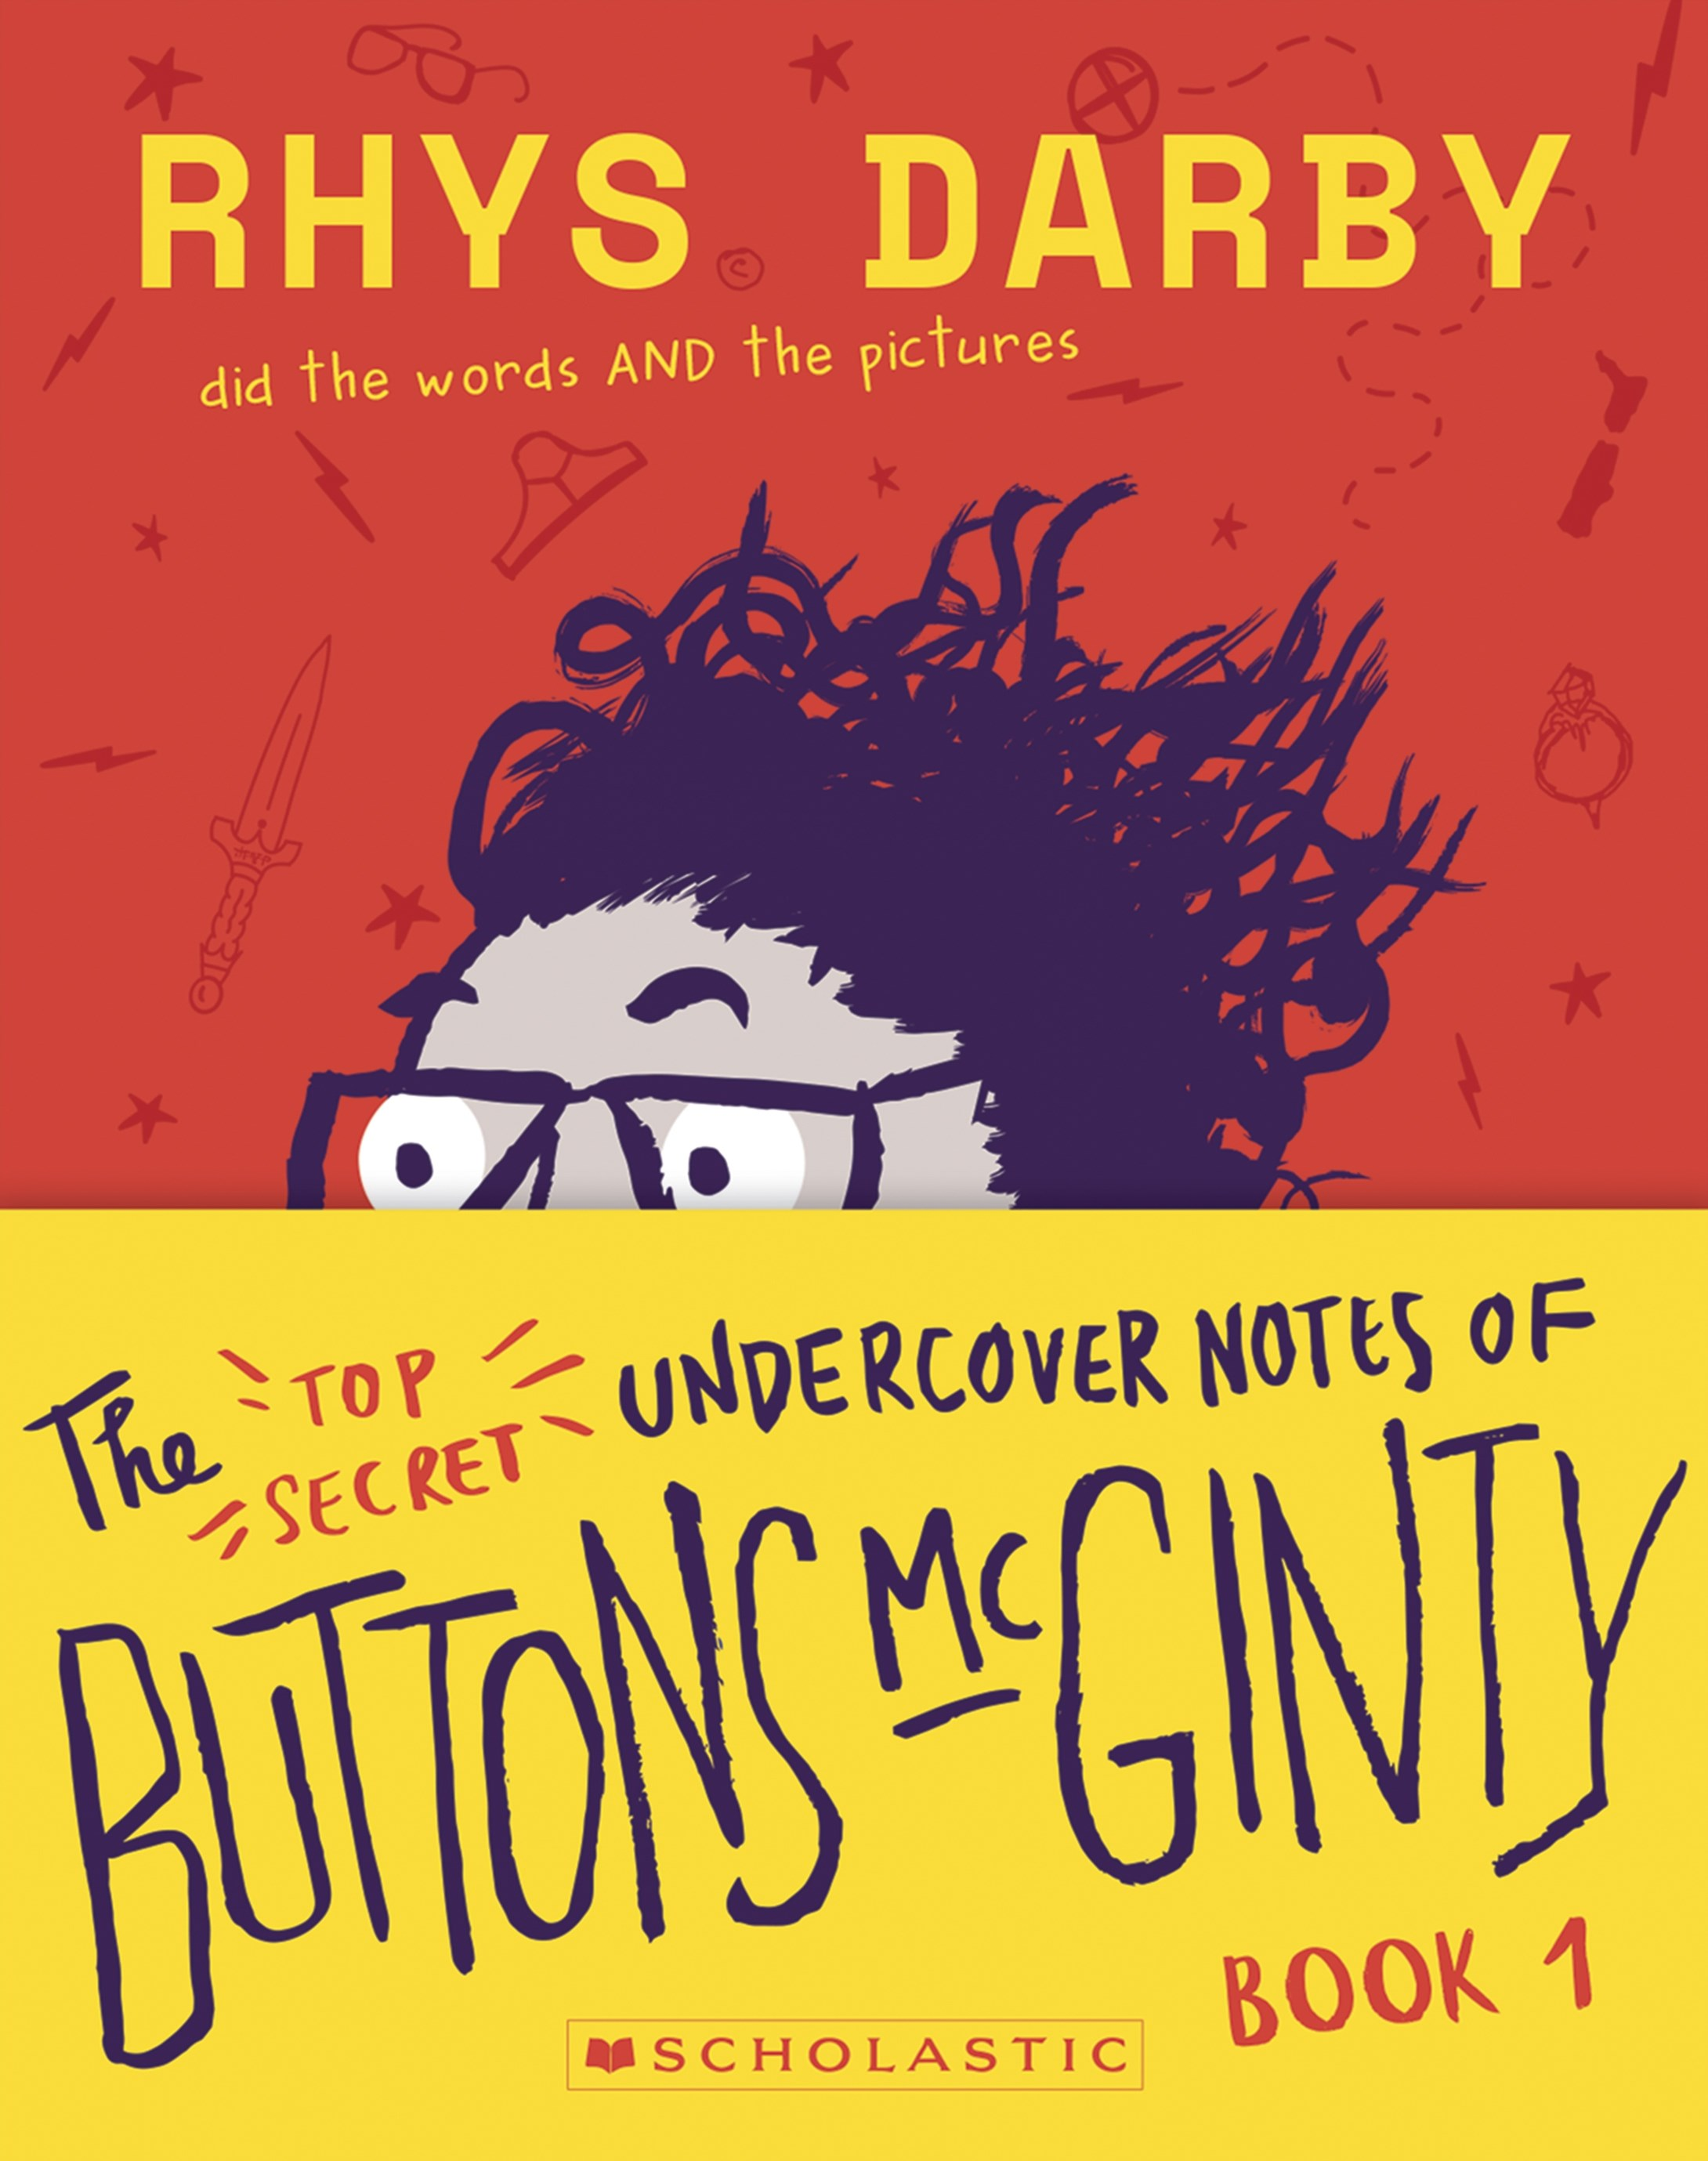 Top Secret Undercover Notes of Buttons McGinty